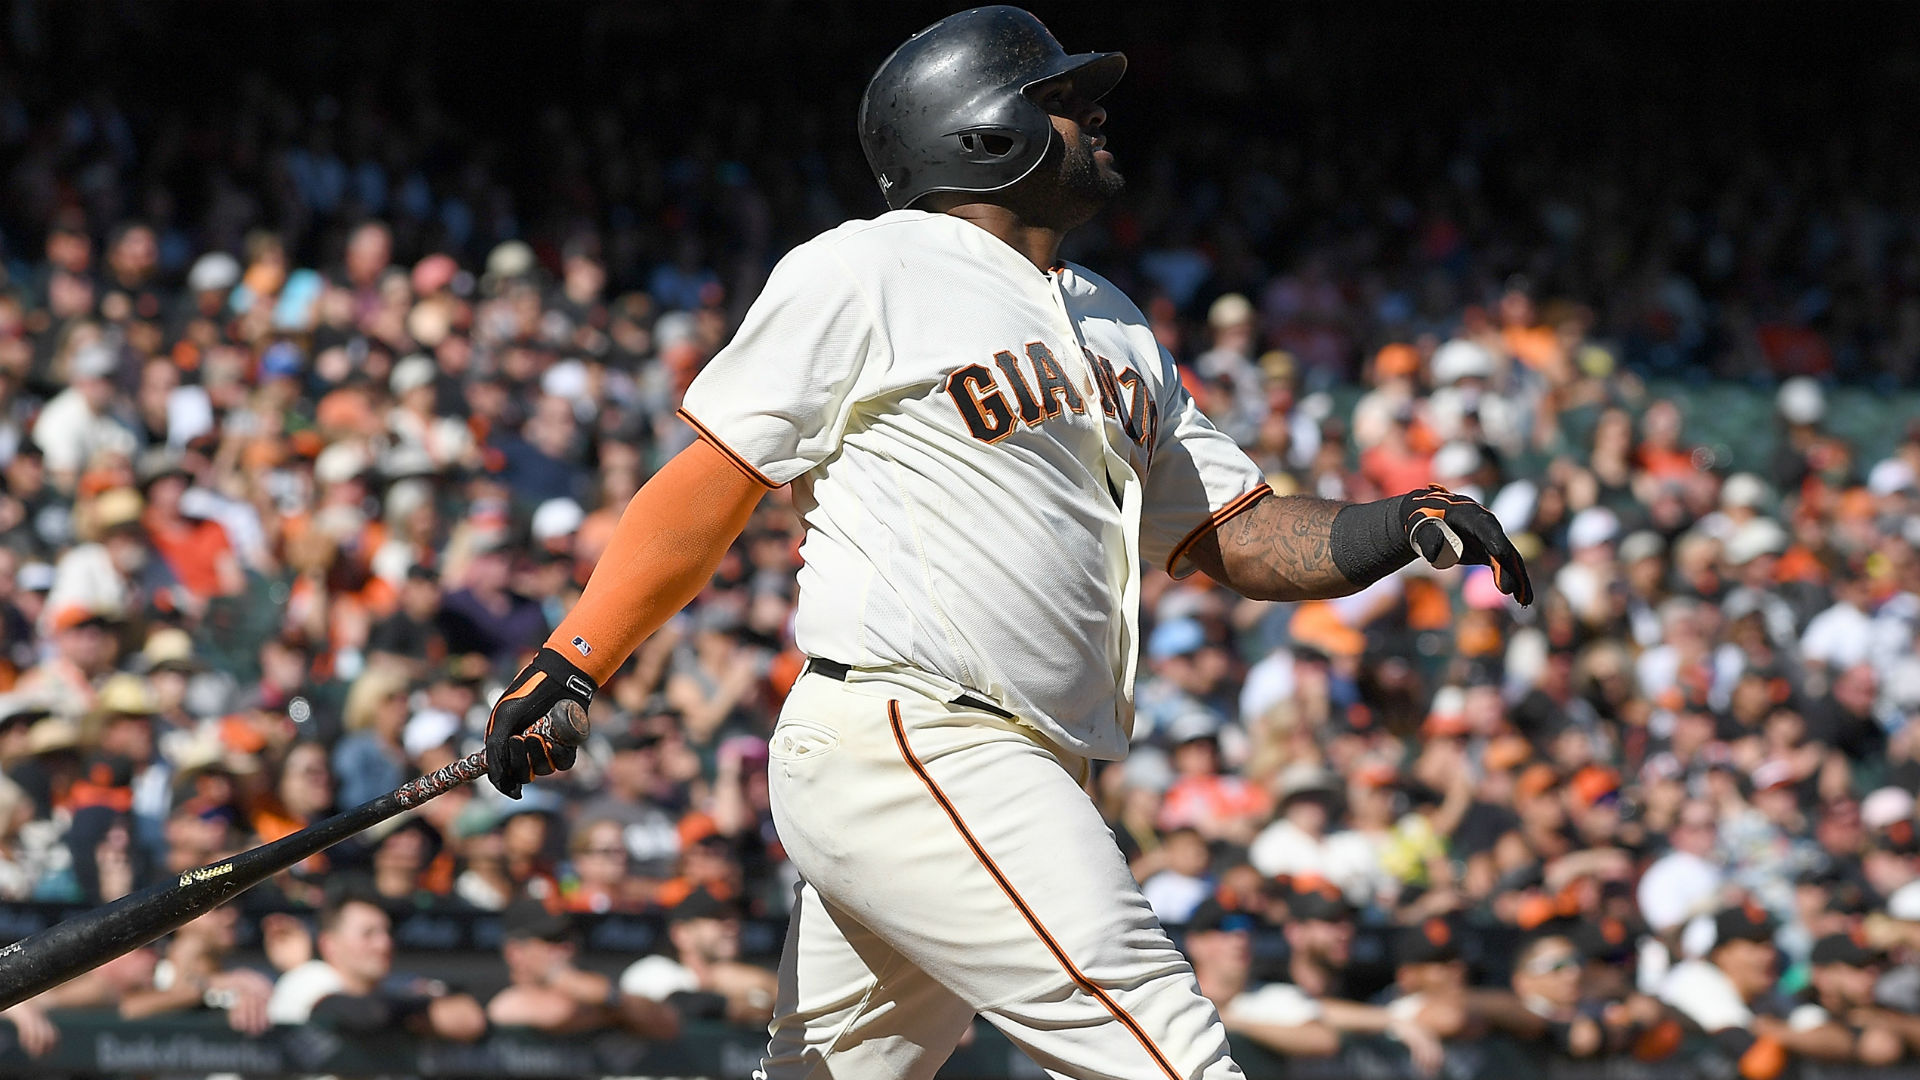 Giants' Pablo Sandoval to have season-ending hamstring surgery, report says